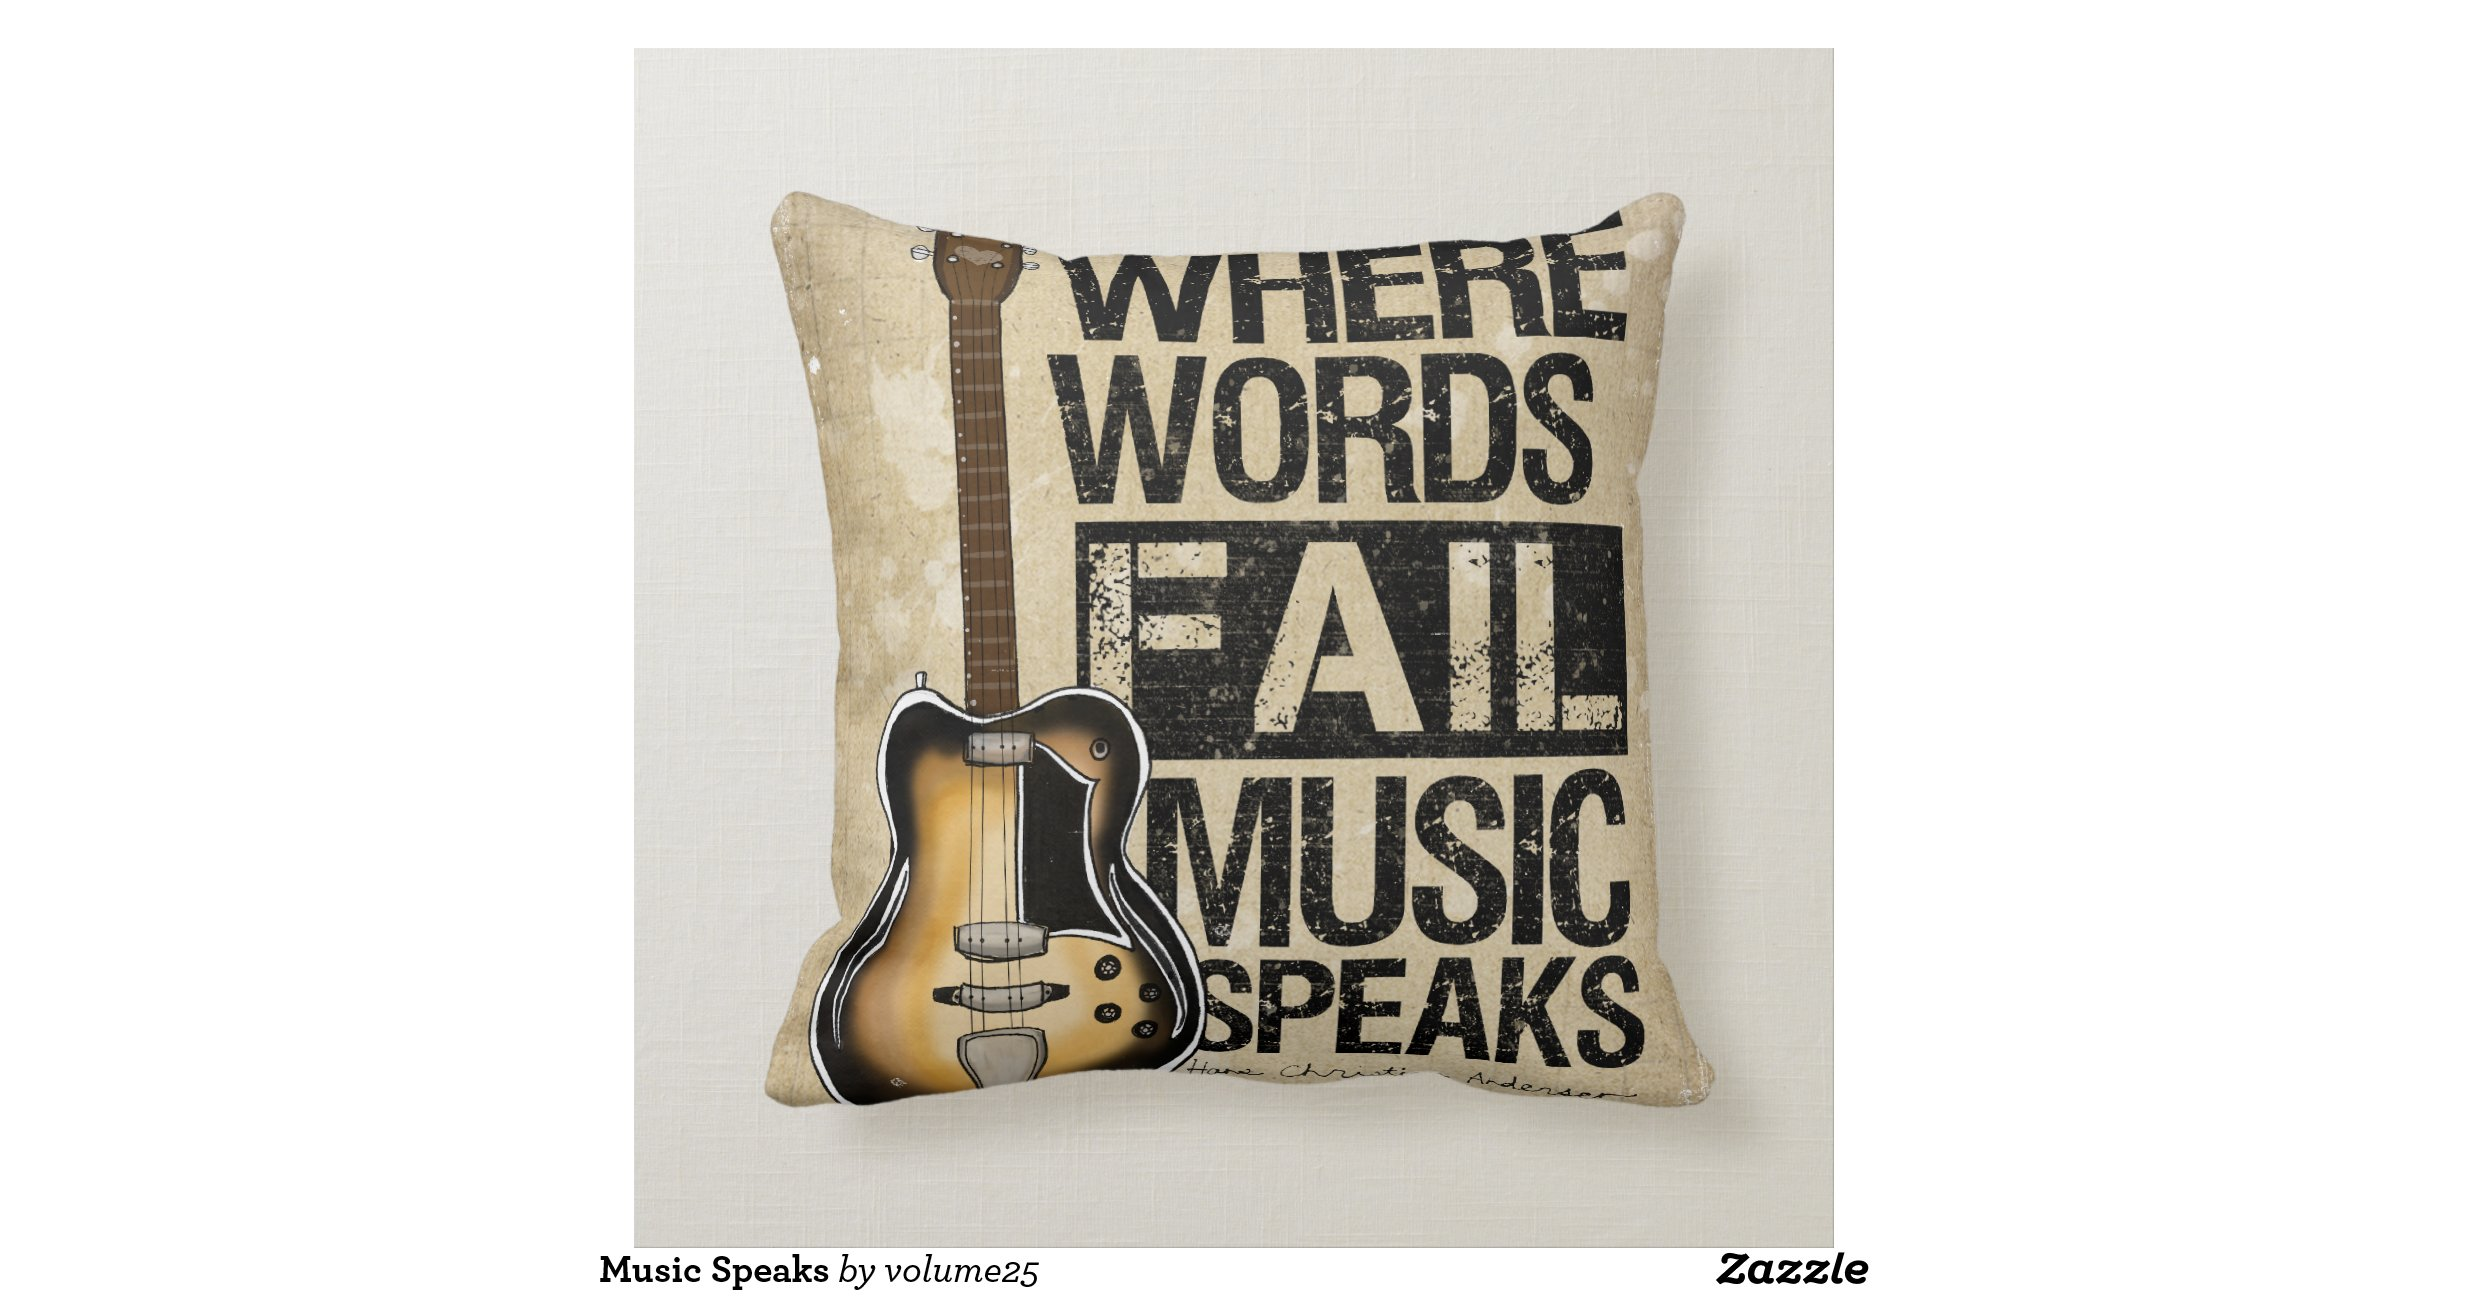 No Throw Pillows On The Bed Song : Music Speaks Throw Pillows Zazzle